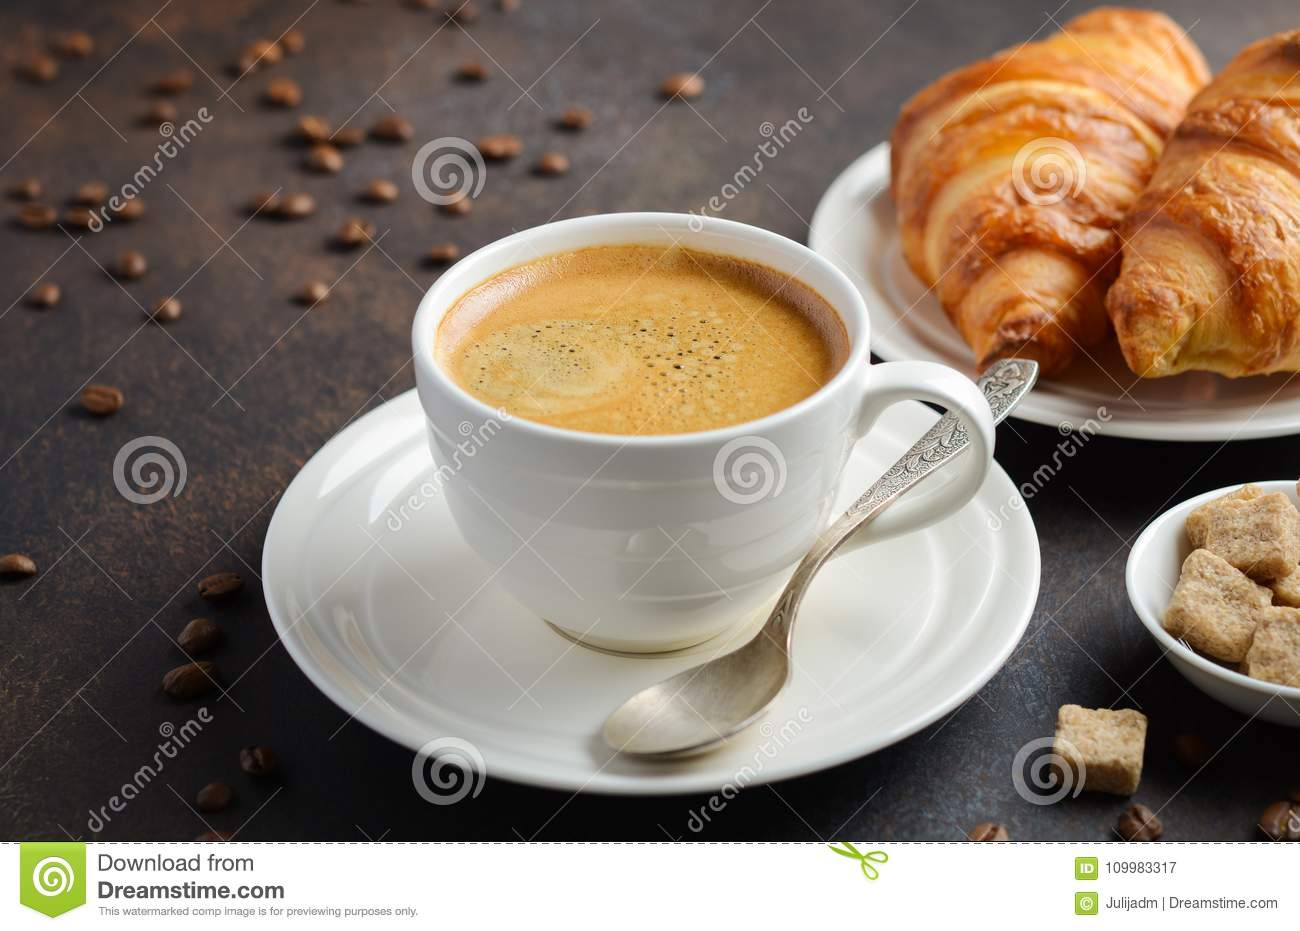 Cup of fresh coffee with croissants on dark background